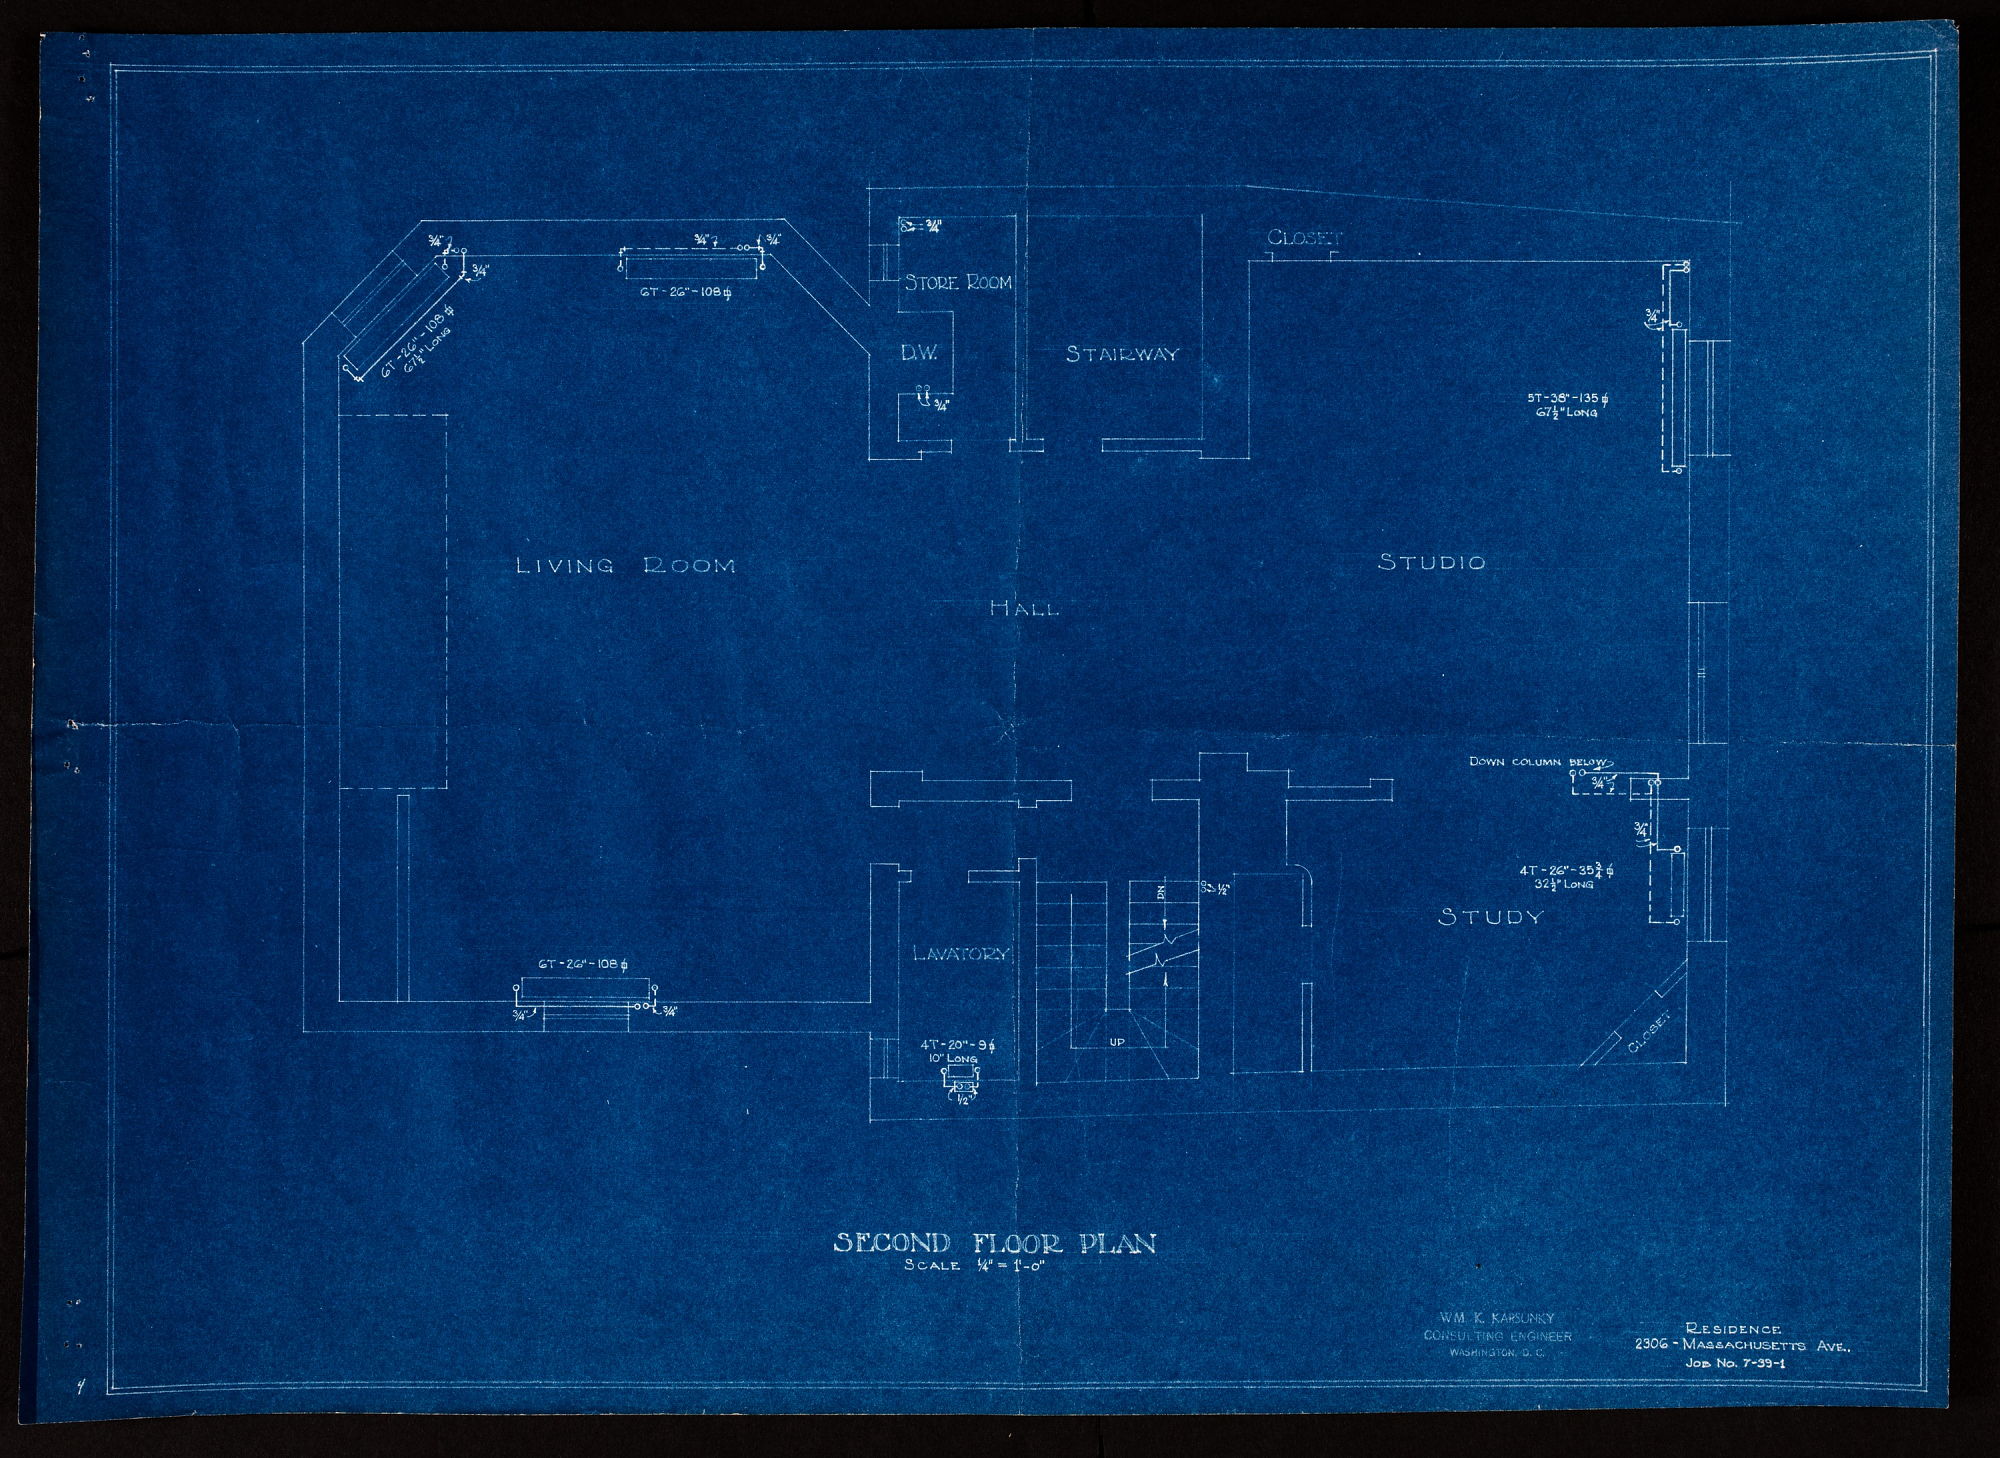 Blueprint of first floor showing hall, living room, studio, and study.